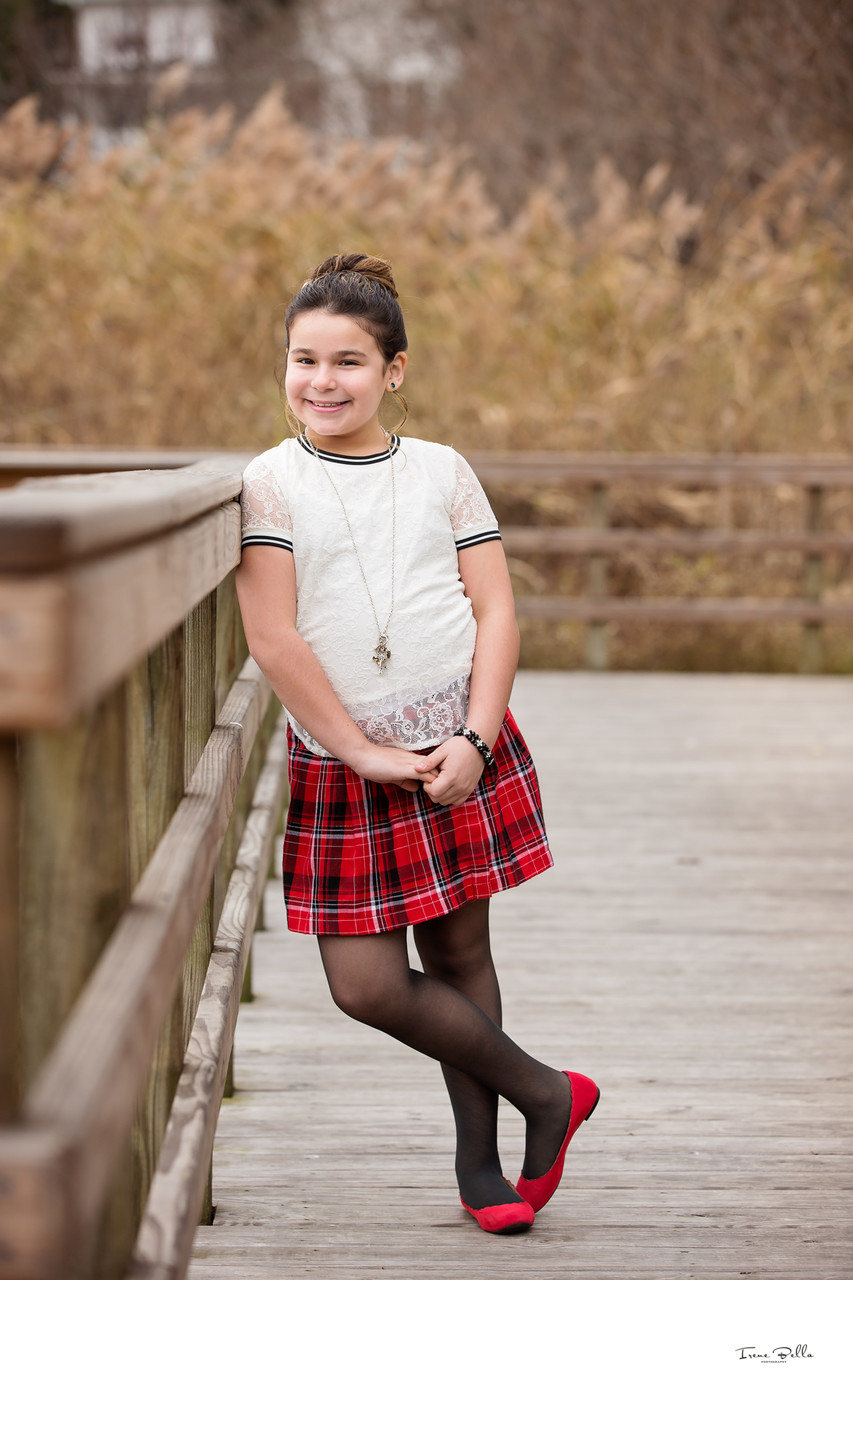 Best Long Island Child Photographer